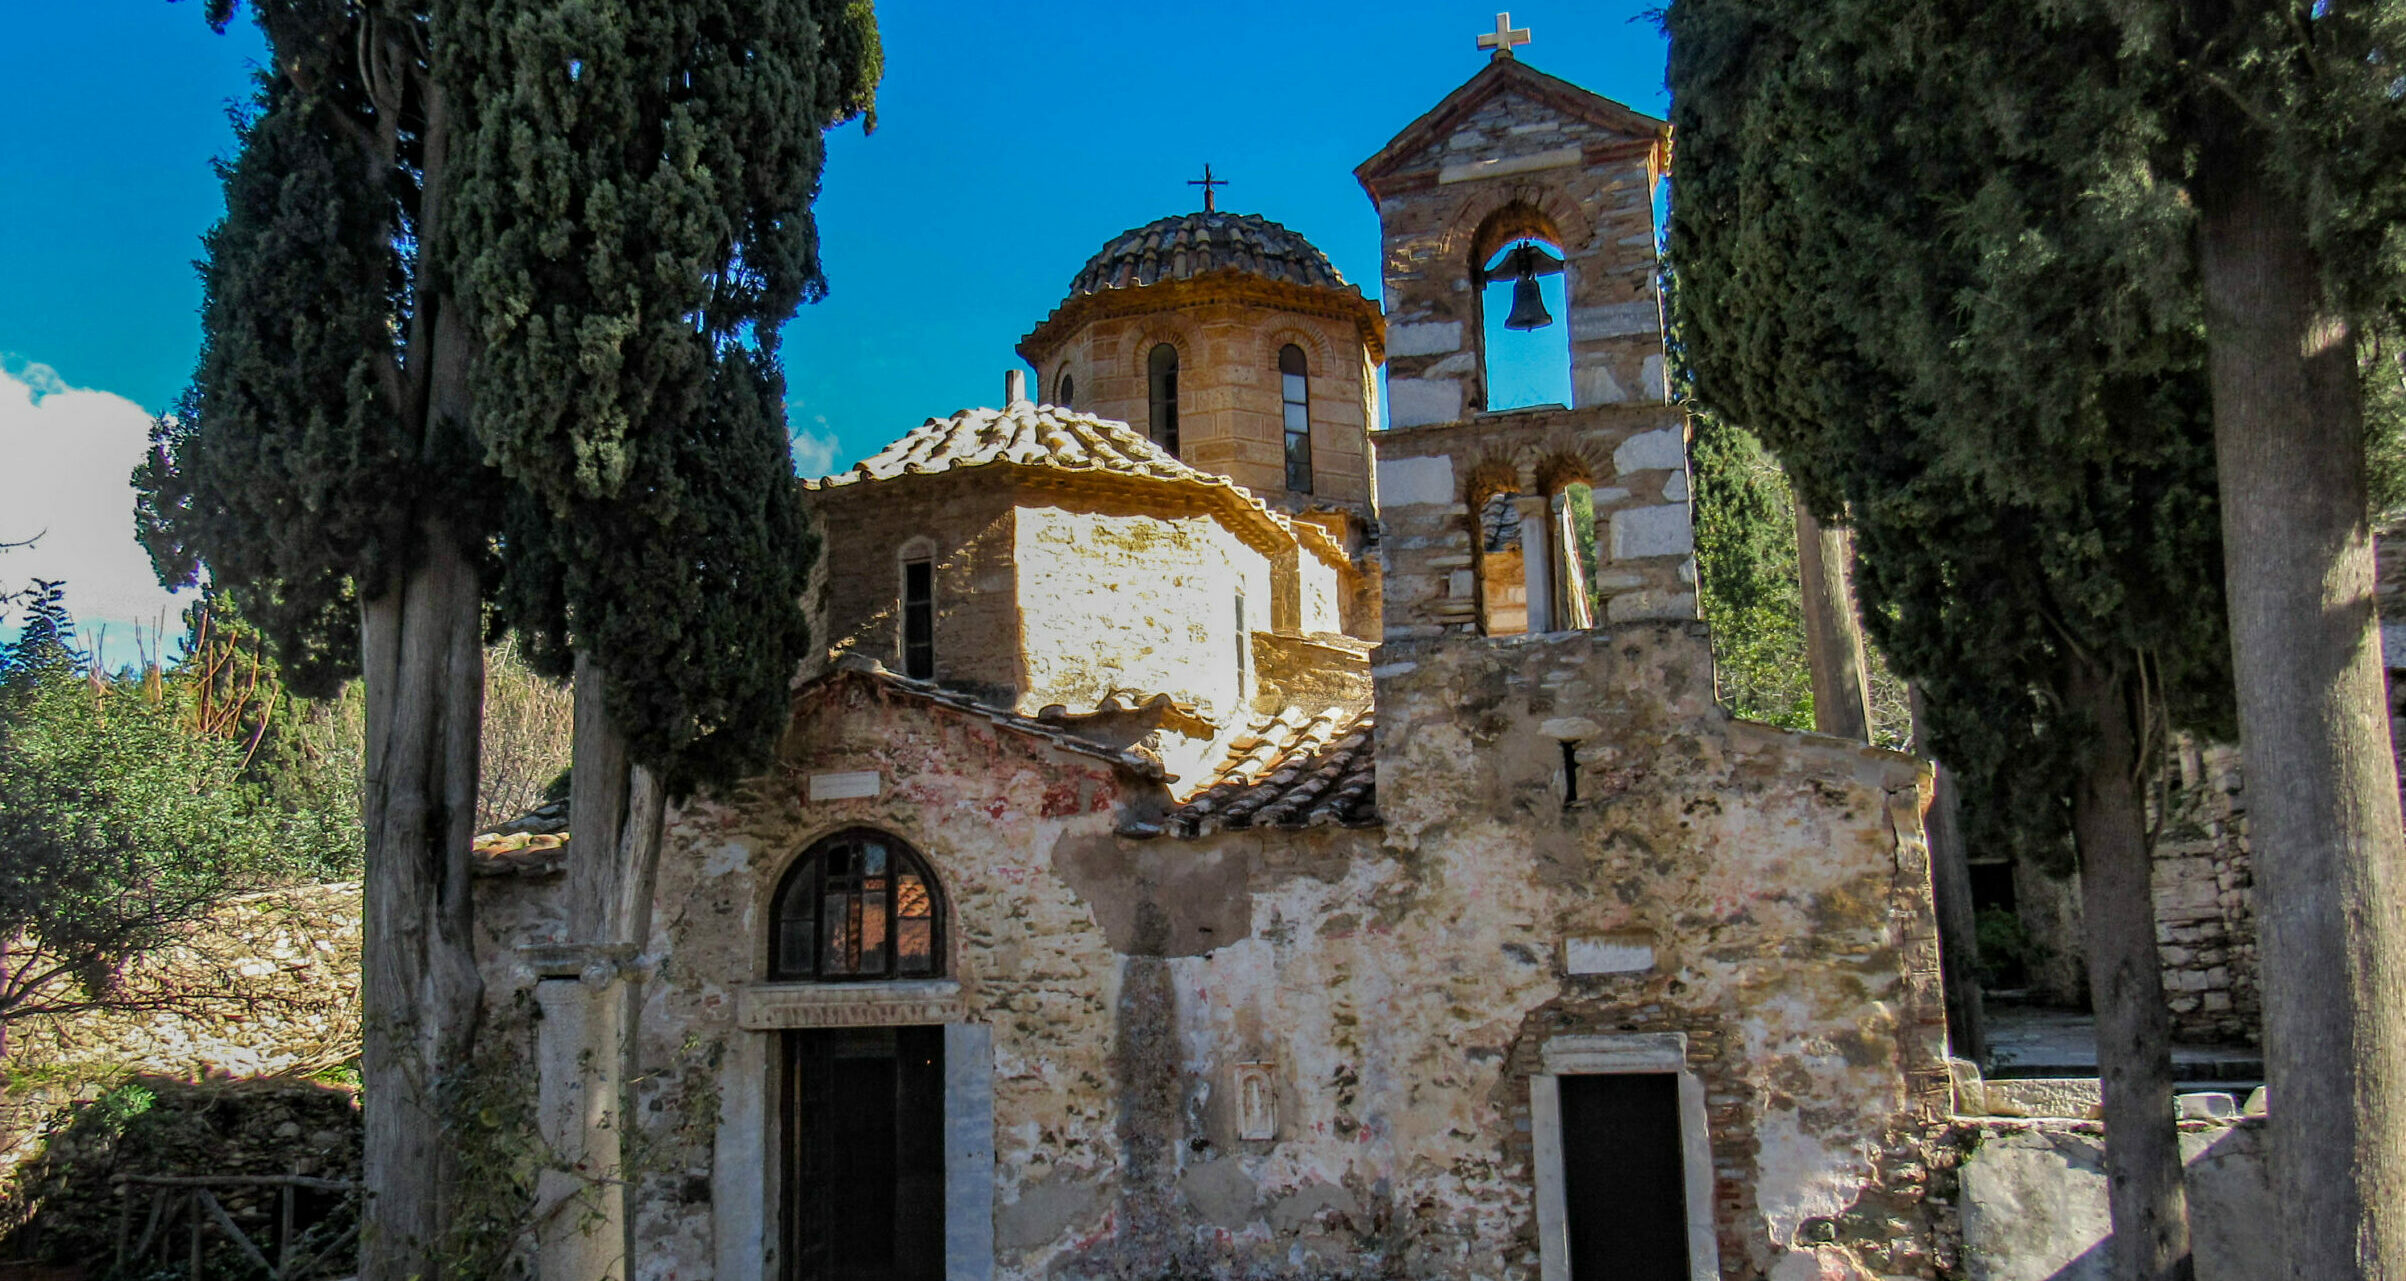 Attica: Kaisariani and its wooded monastery